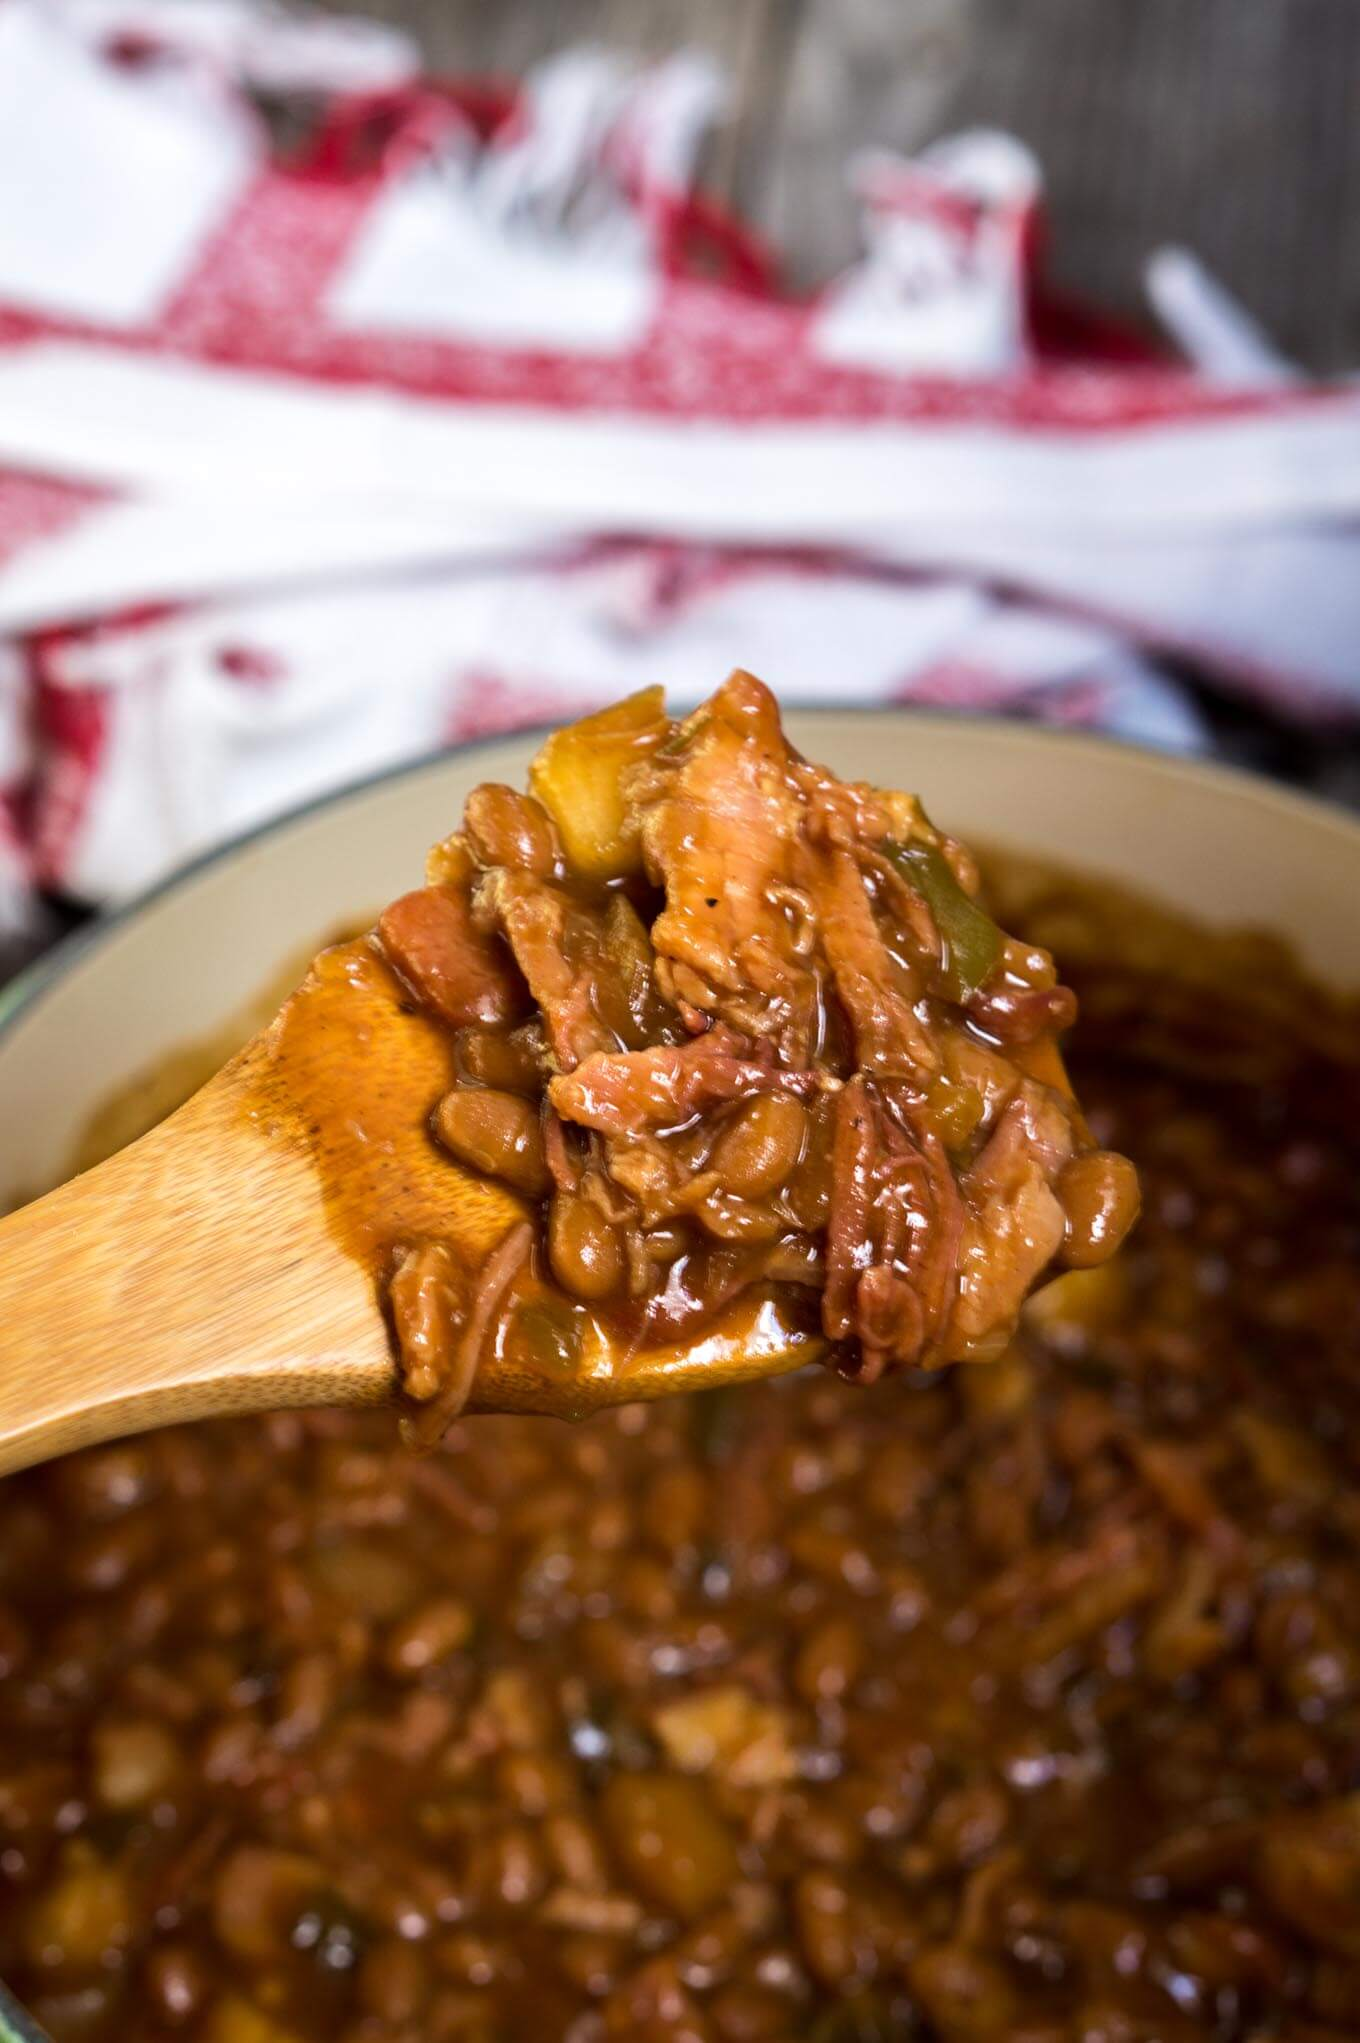 Apple Baked Beans can be cooked on the grill, over a campfire or in the oven. They make the perfect side for any barbecue.